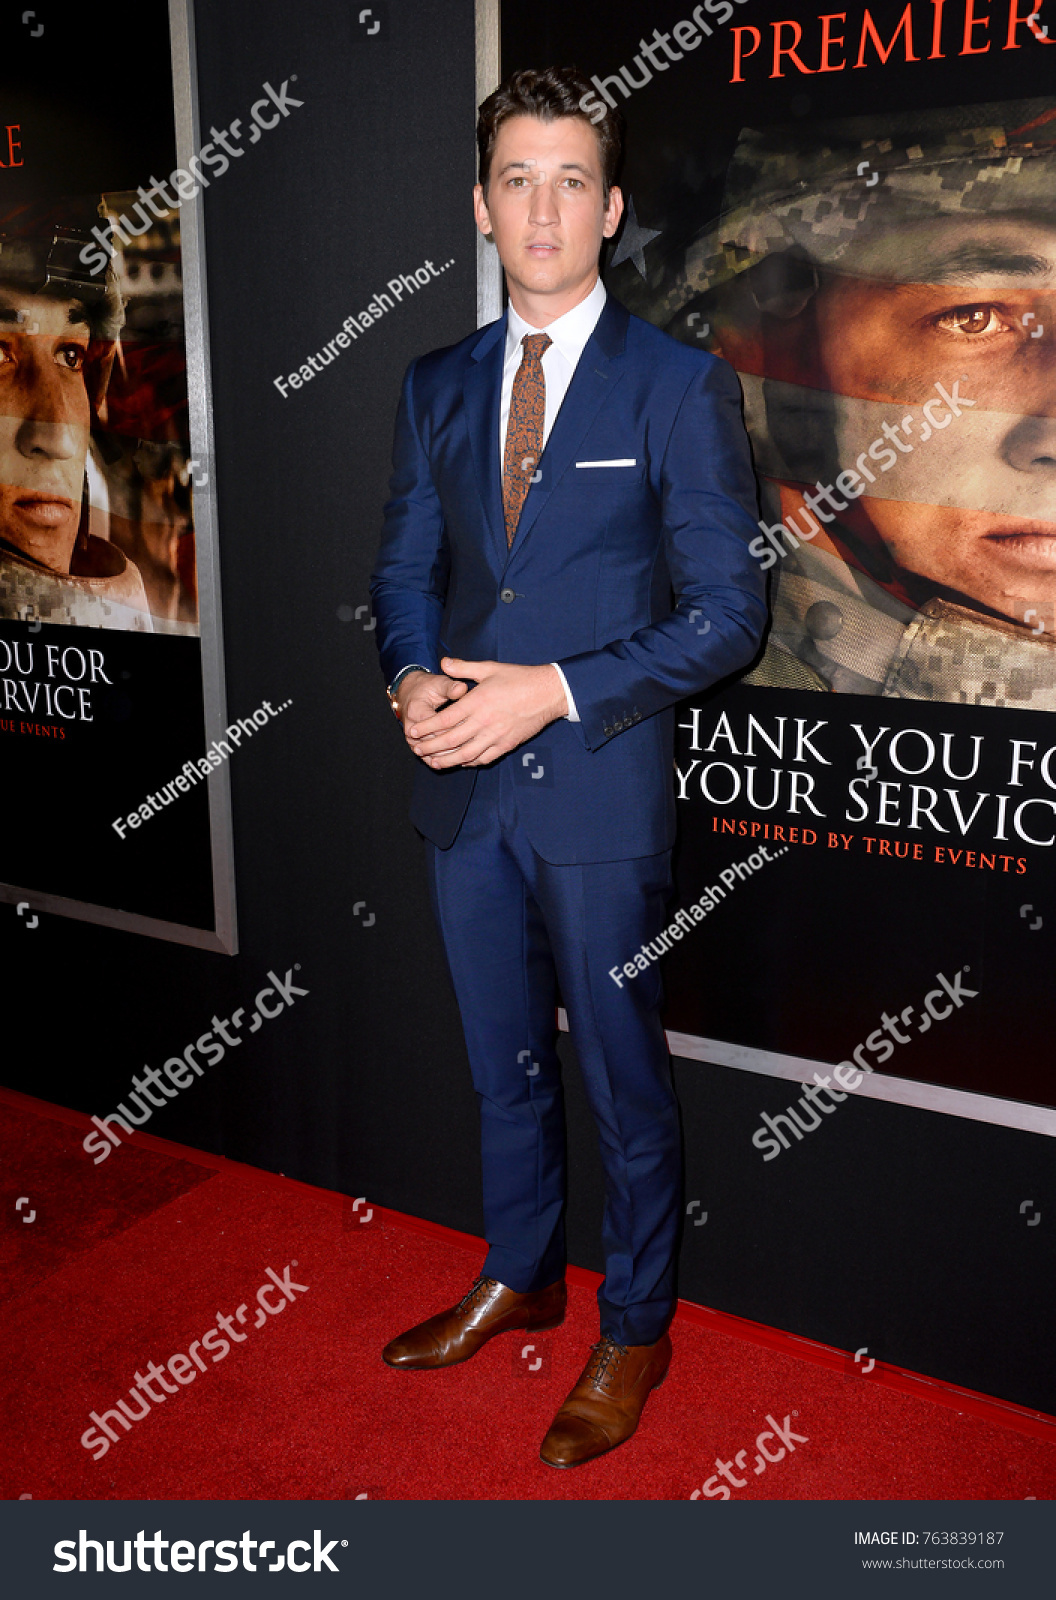 Teller Regal Los Angeles Ca October 23 2017 Miles Teller At The Premiere